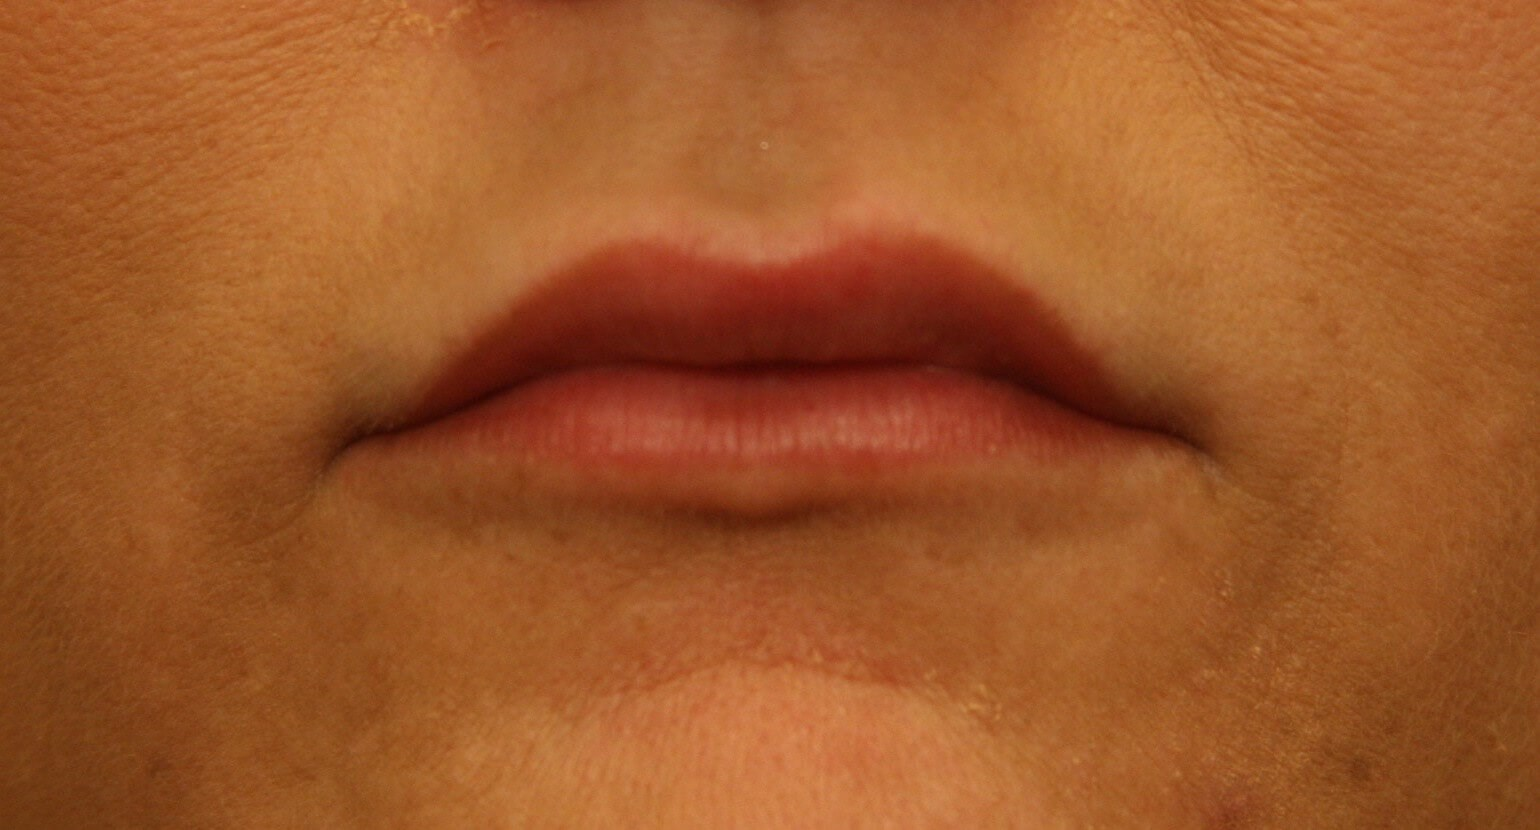 Lip Augmentation Results After